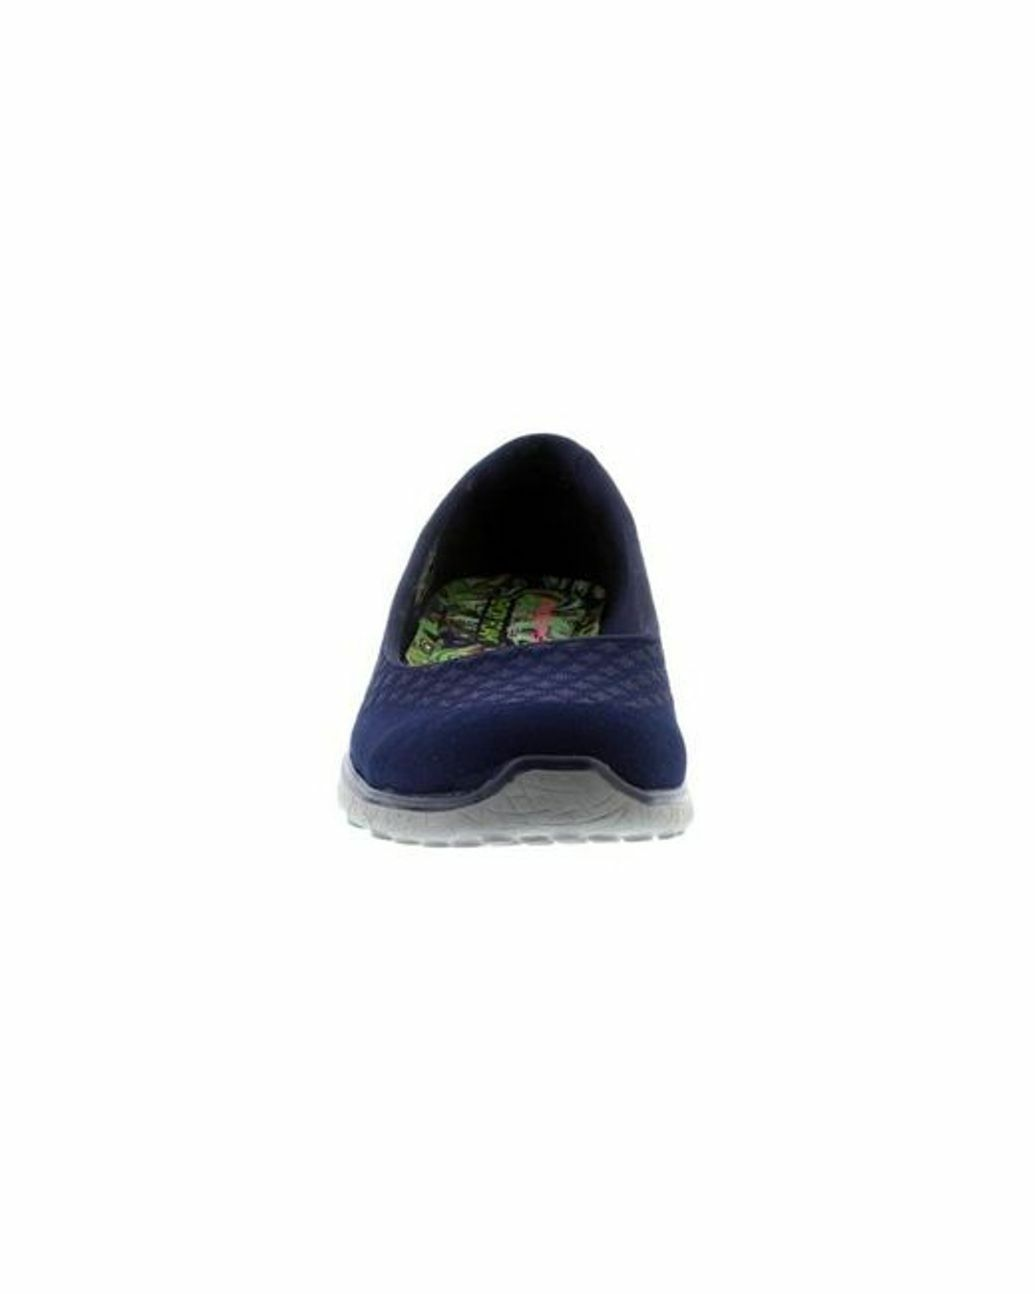 SKECHERS Microburst - One shoe Up shoe One 23312. Air Cooled Memory Foam Insole. Navy 1afc81